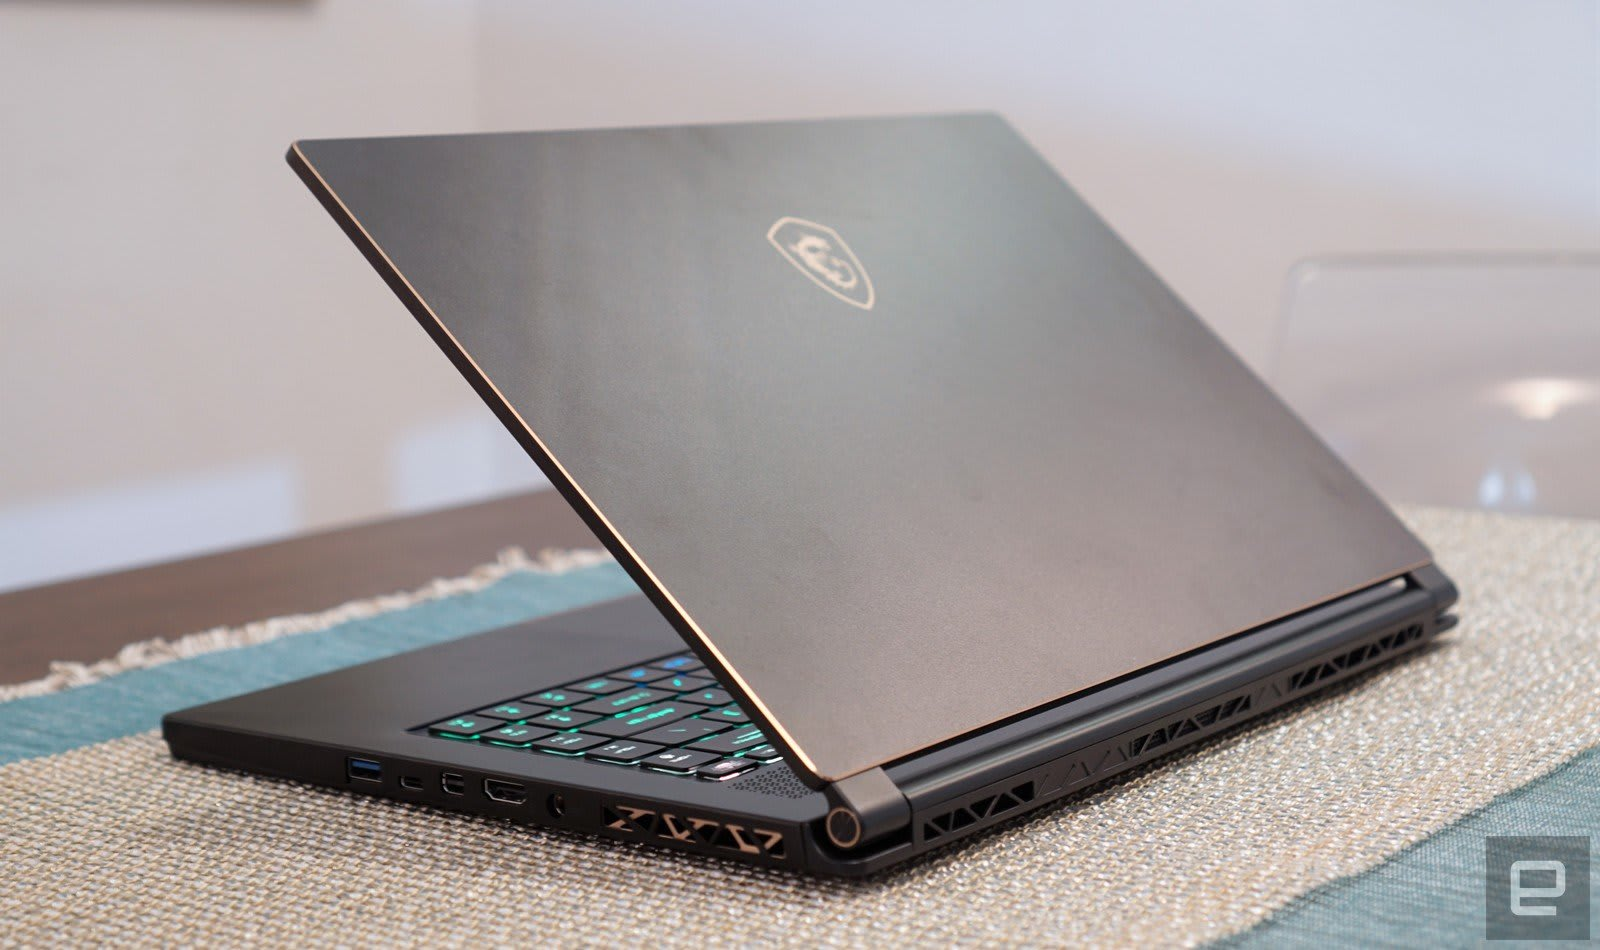 baad3da9 MSI GS65 Stealth Thin review: A milestone for laptop gaming